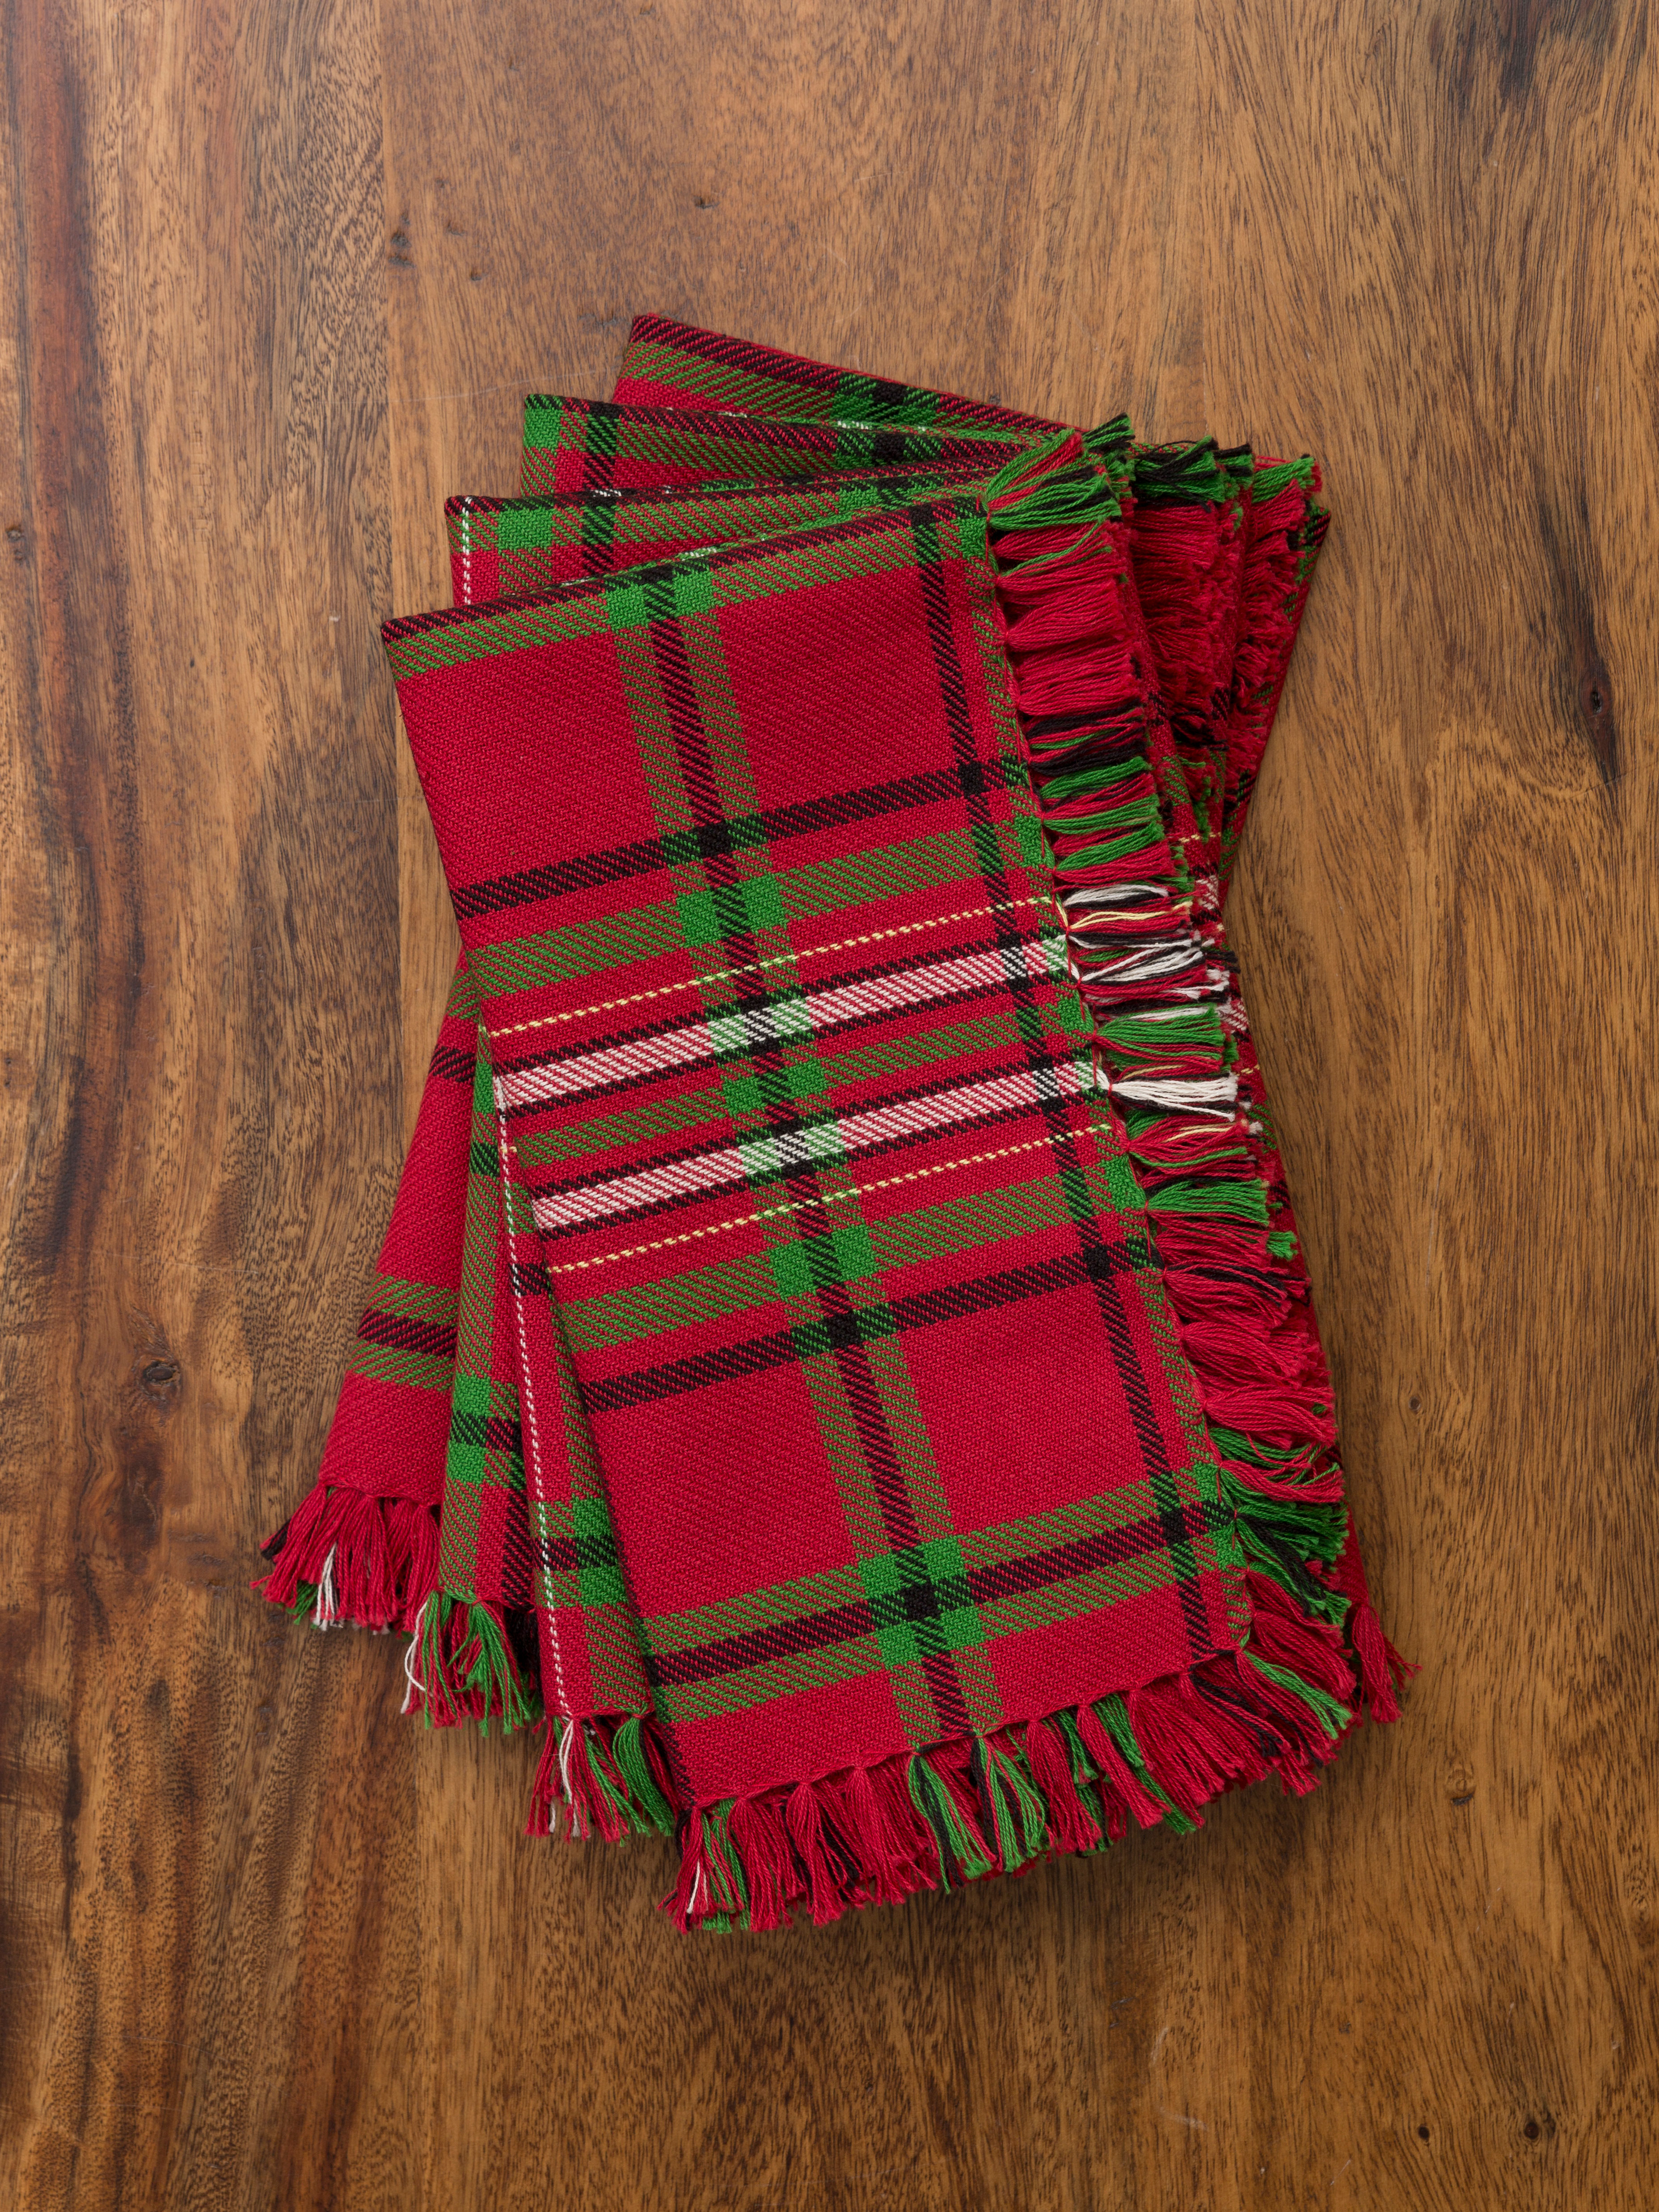 Christmas Plaid Tablecloth Linens Amp Kitchen Tablecloths